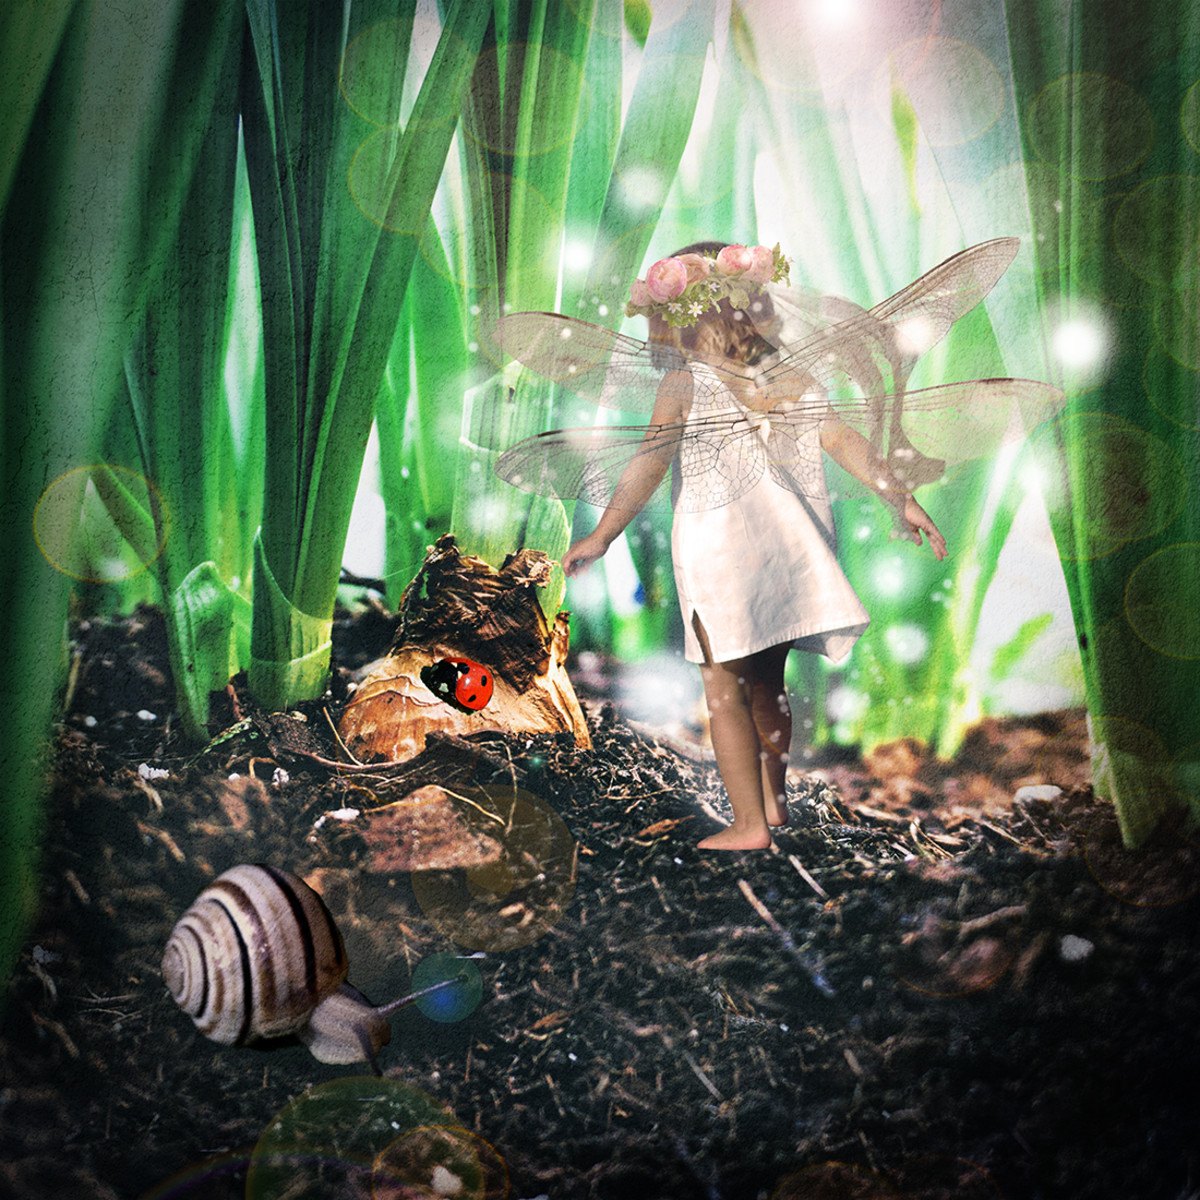 The Flower Bulb Fairy gives us great perspective with this low angle.